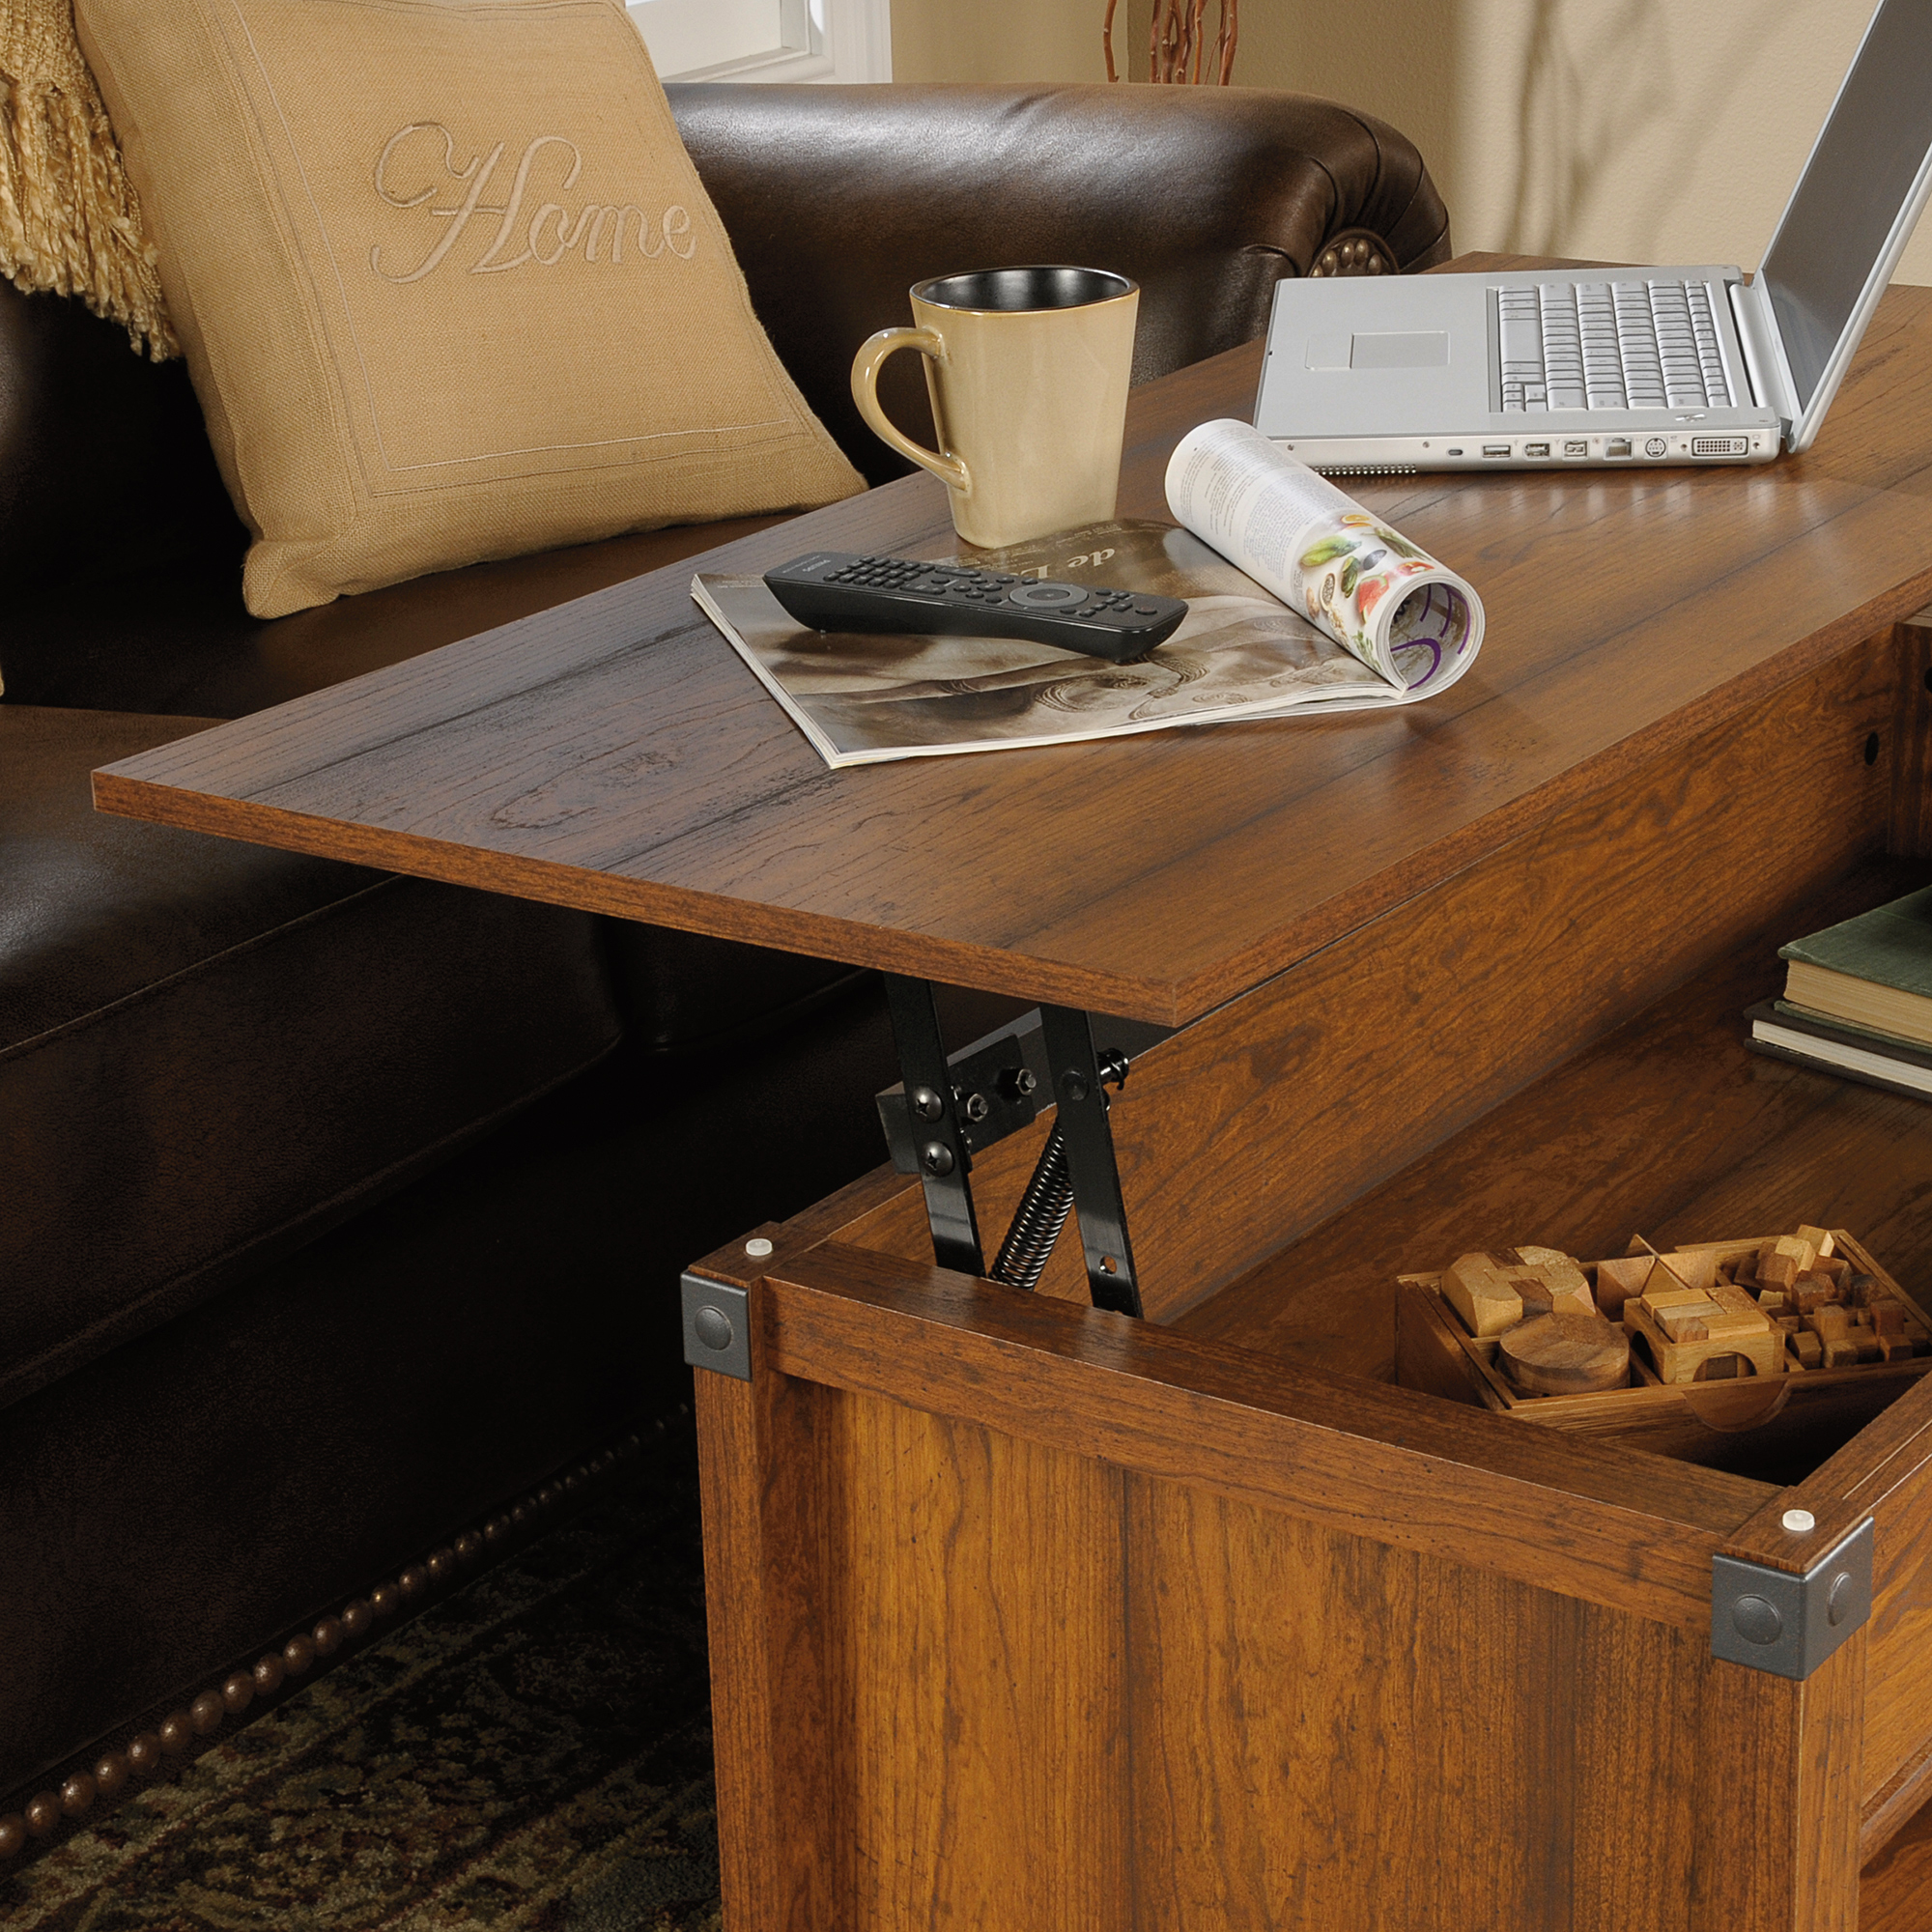 Sauder Carson Forge Coffee Table Sauder The Furniture Co - Lift top coffee table with storage drawers